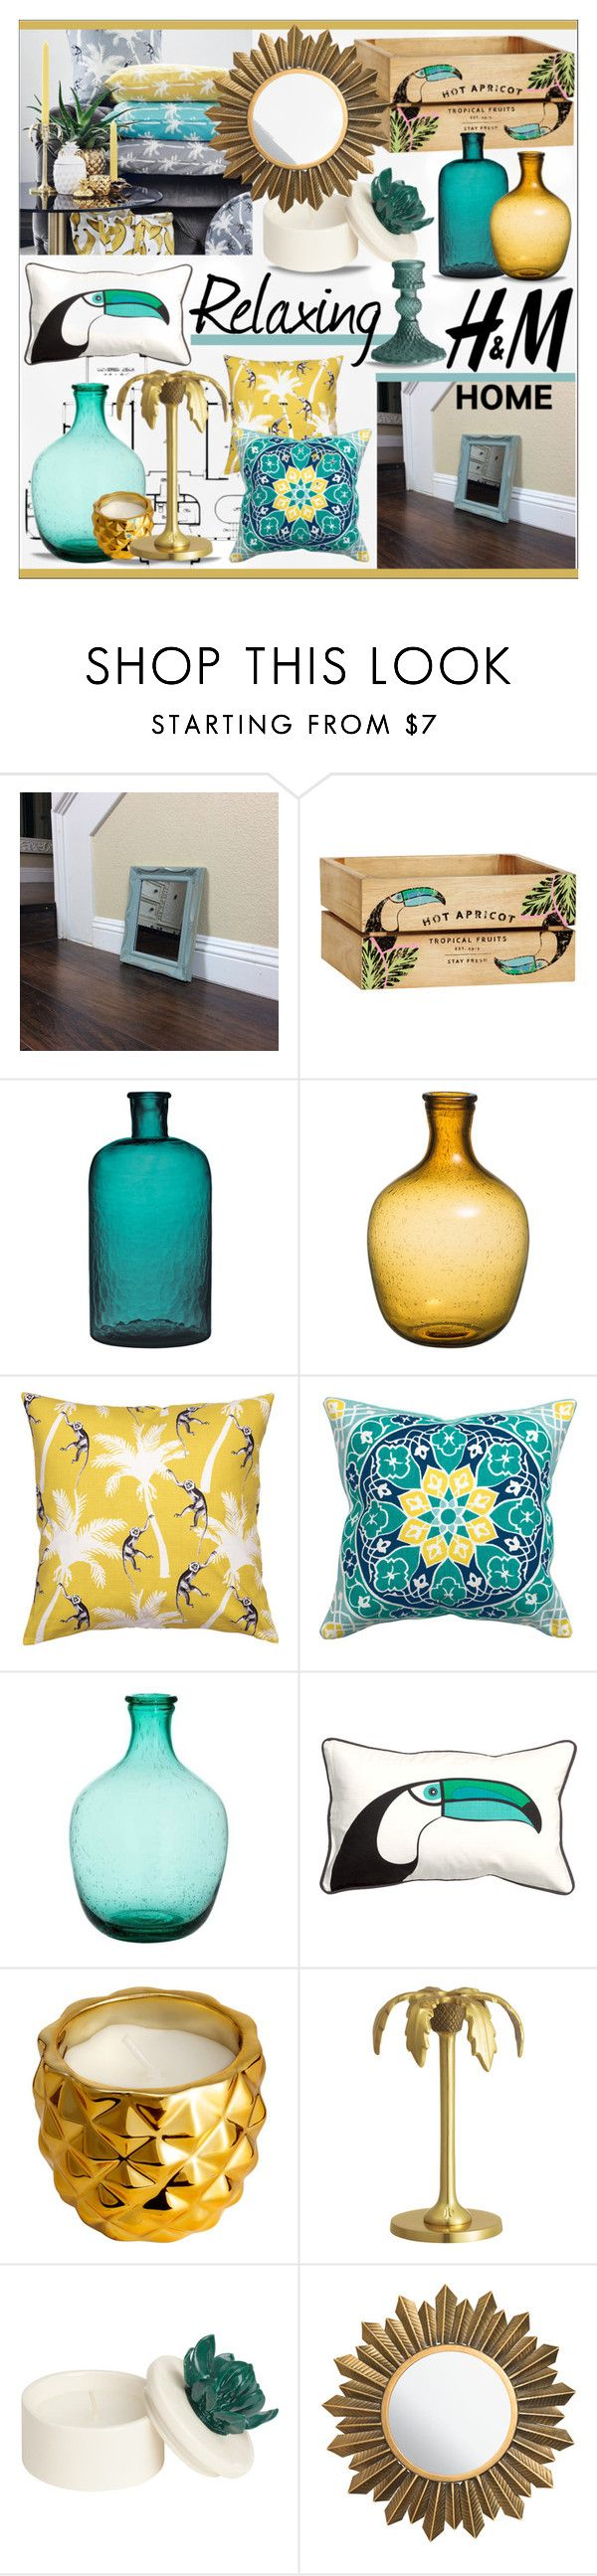 """H & M Home * Turquoise & Yellow Living Room"" by calamity-jane-always ❤ liked on Polyvore featuring interior, interiors, interior design, home, home decor, interior decorating, H&M, living room, homedecor and homeset"